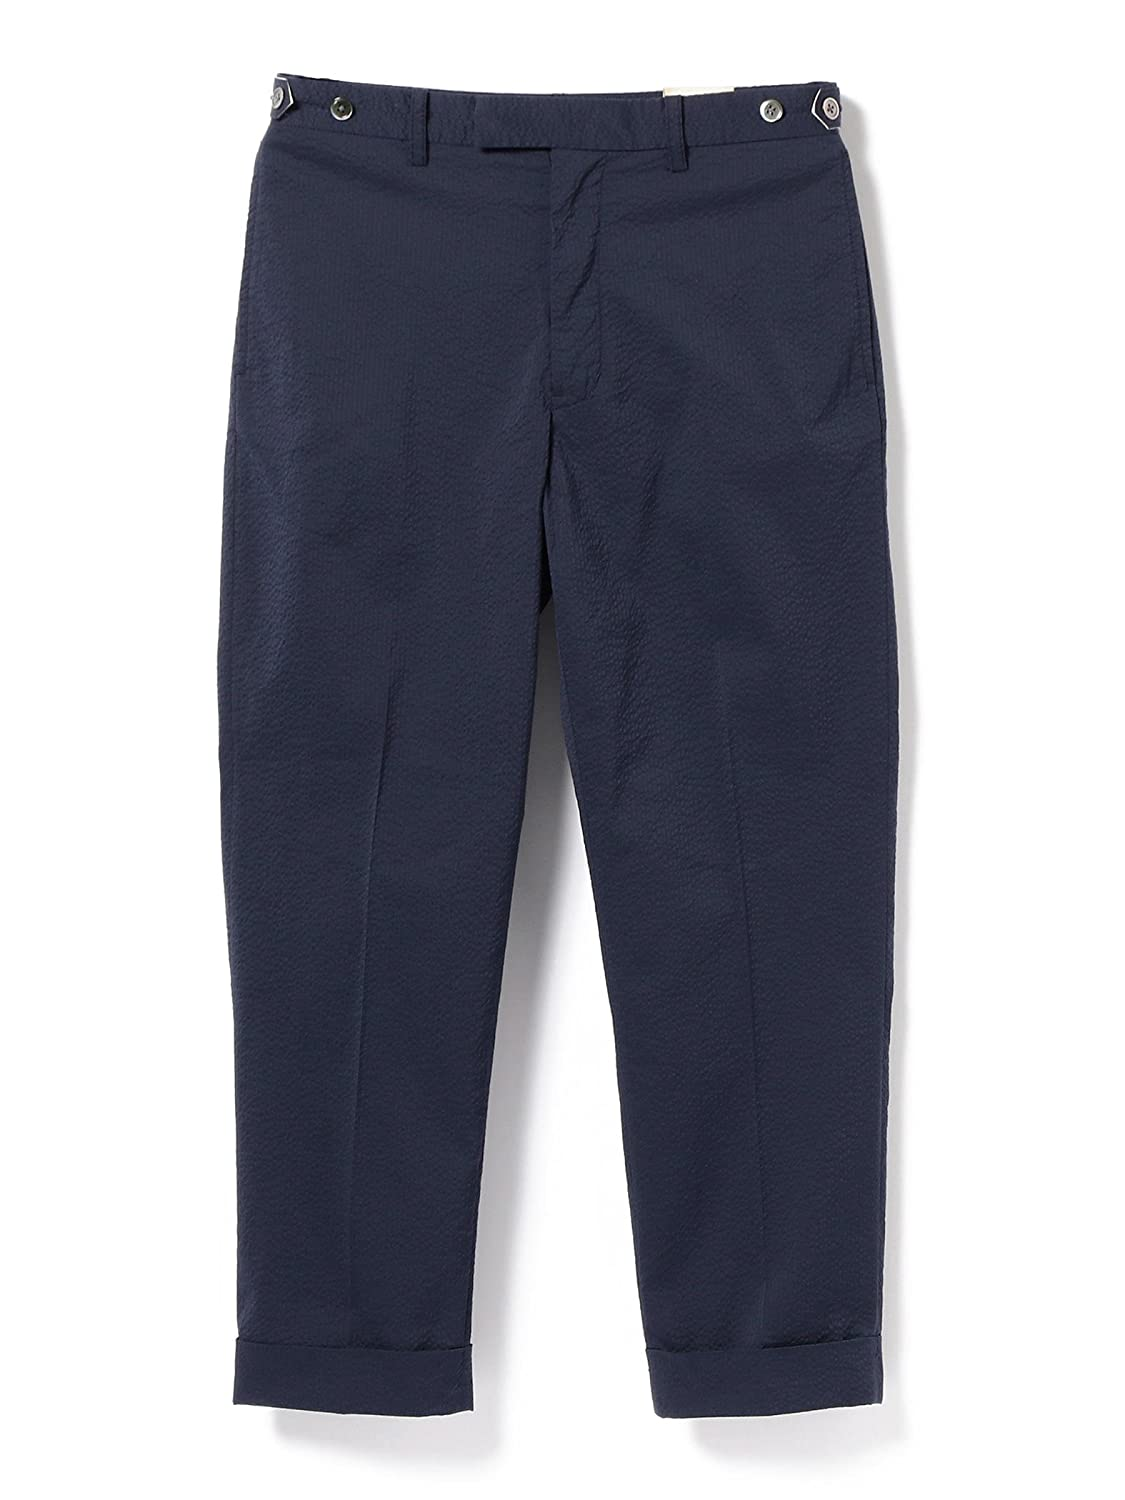 "Clothing, Shoes & Accessories Other Men's Clothing 3x Mens Navy Black Chino Type Trousers 42"" Waist M&s North Coast 33"" Leg"